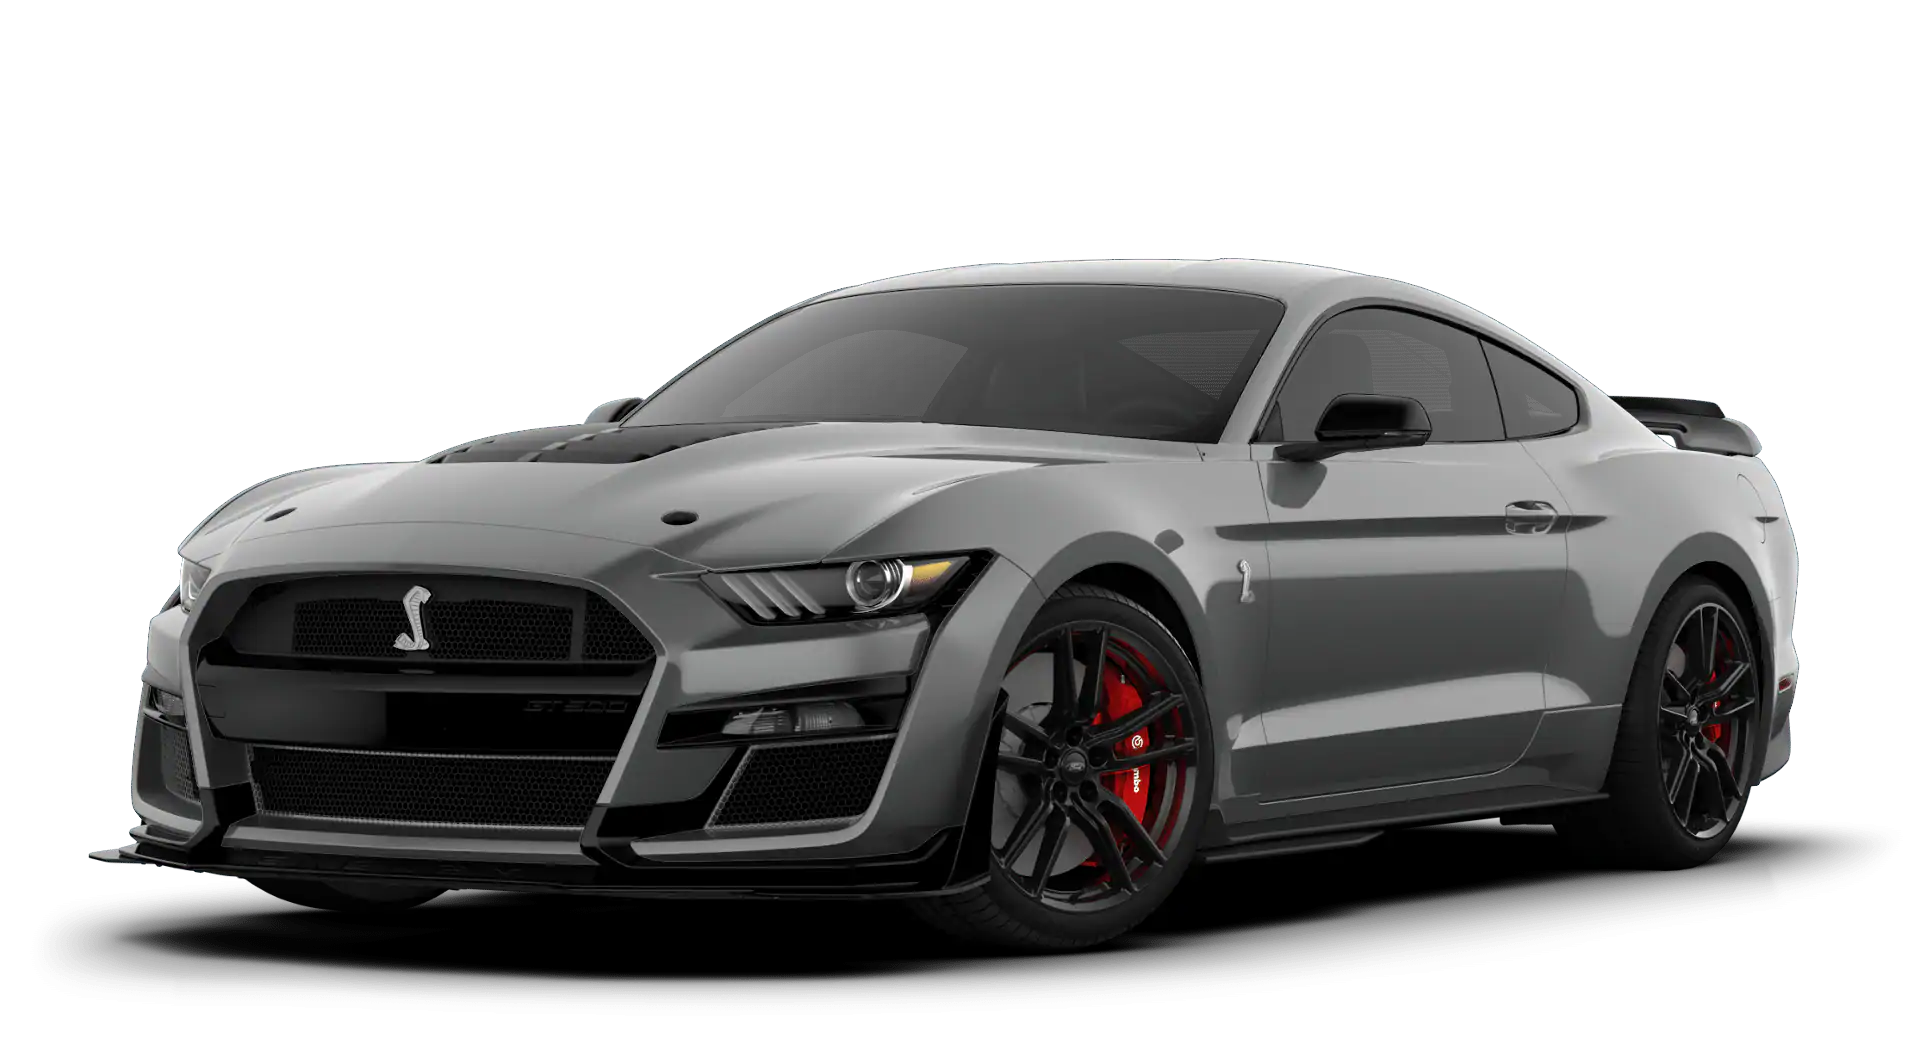 2020 Ford Mustang Shelby GT500 Magnetic